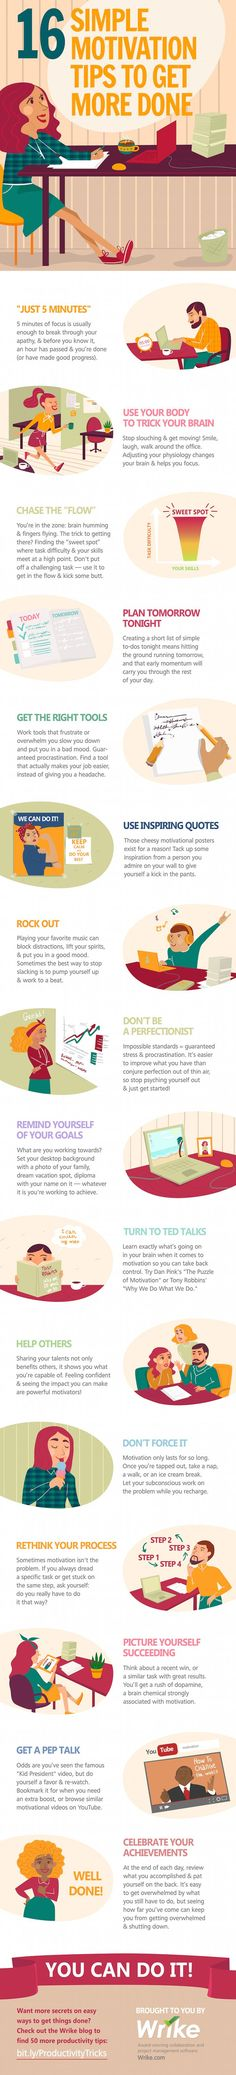 16 Easy-To-Try Motivation Tips To Get More Done: 16 Easy-To-Try Motivation Tips To Get More Done